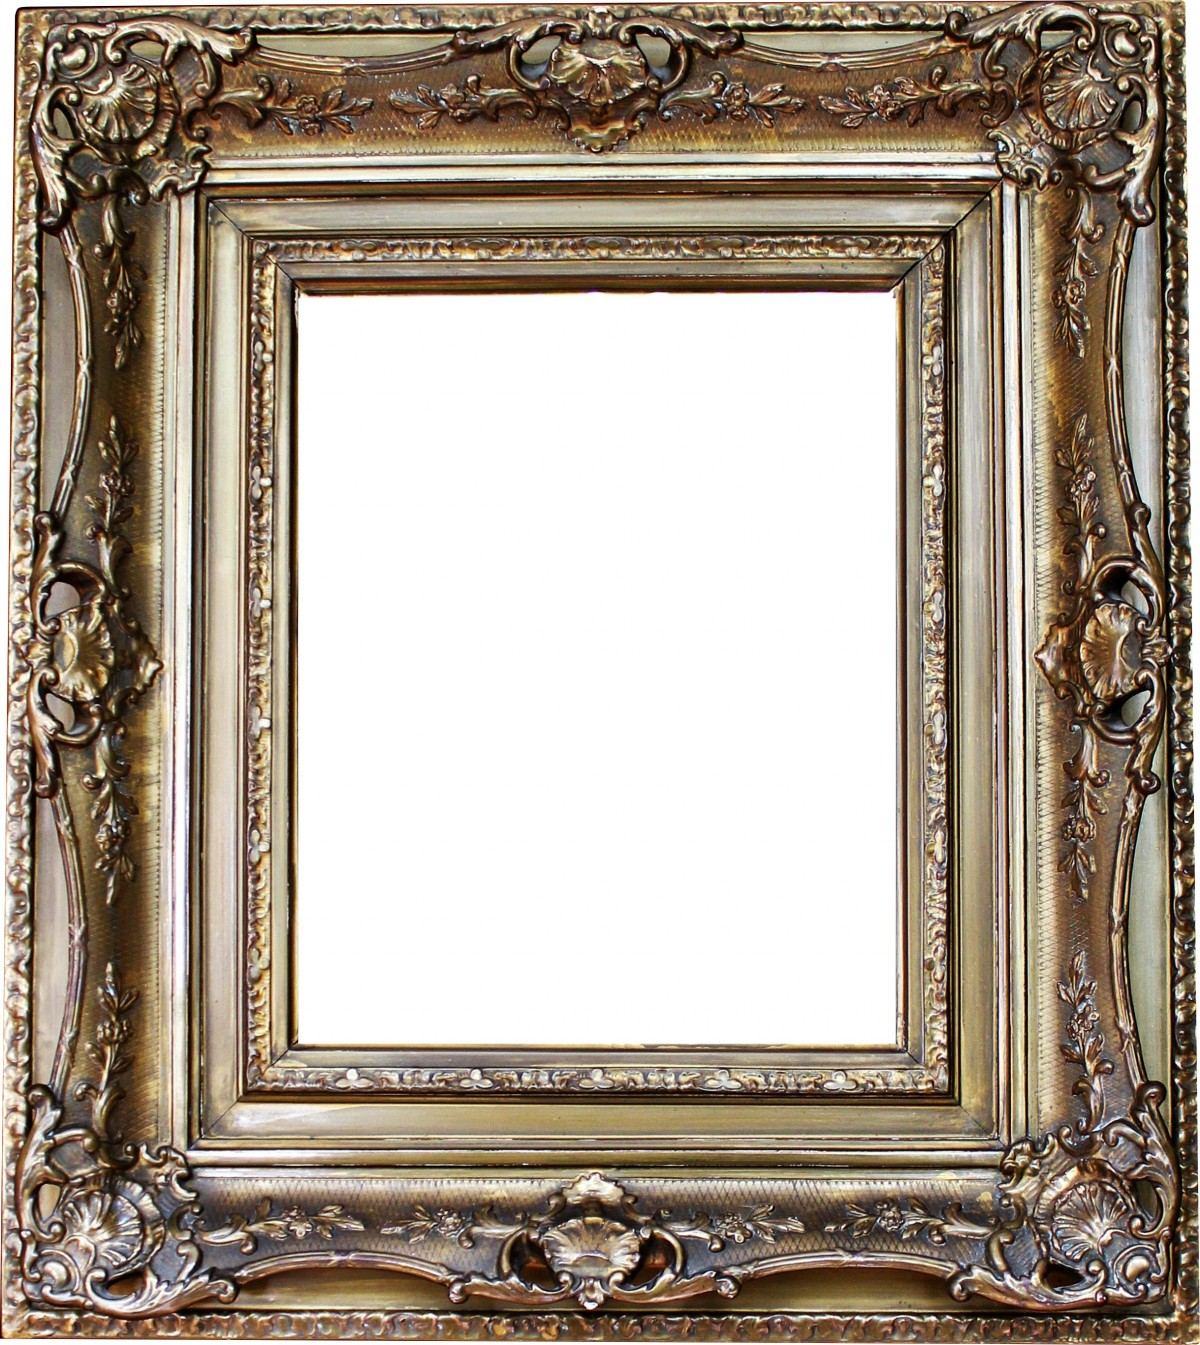 picture_frame_frame_stucco_frame_magnificent_frame_antique_decorated-1336008%5B1%5D.jpg